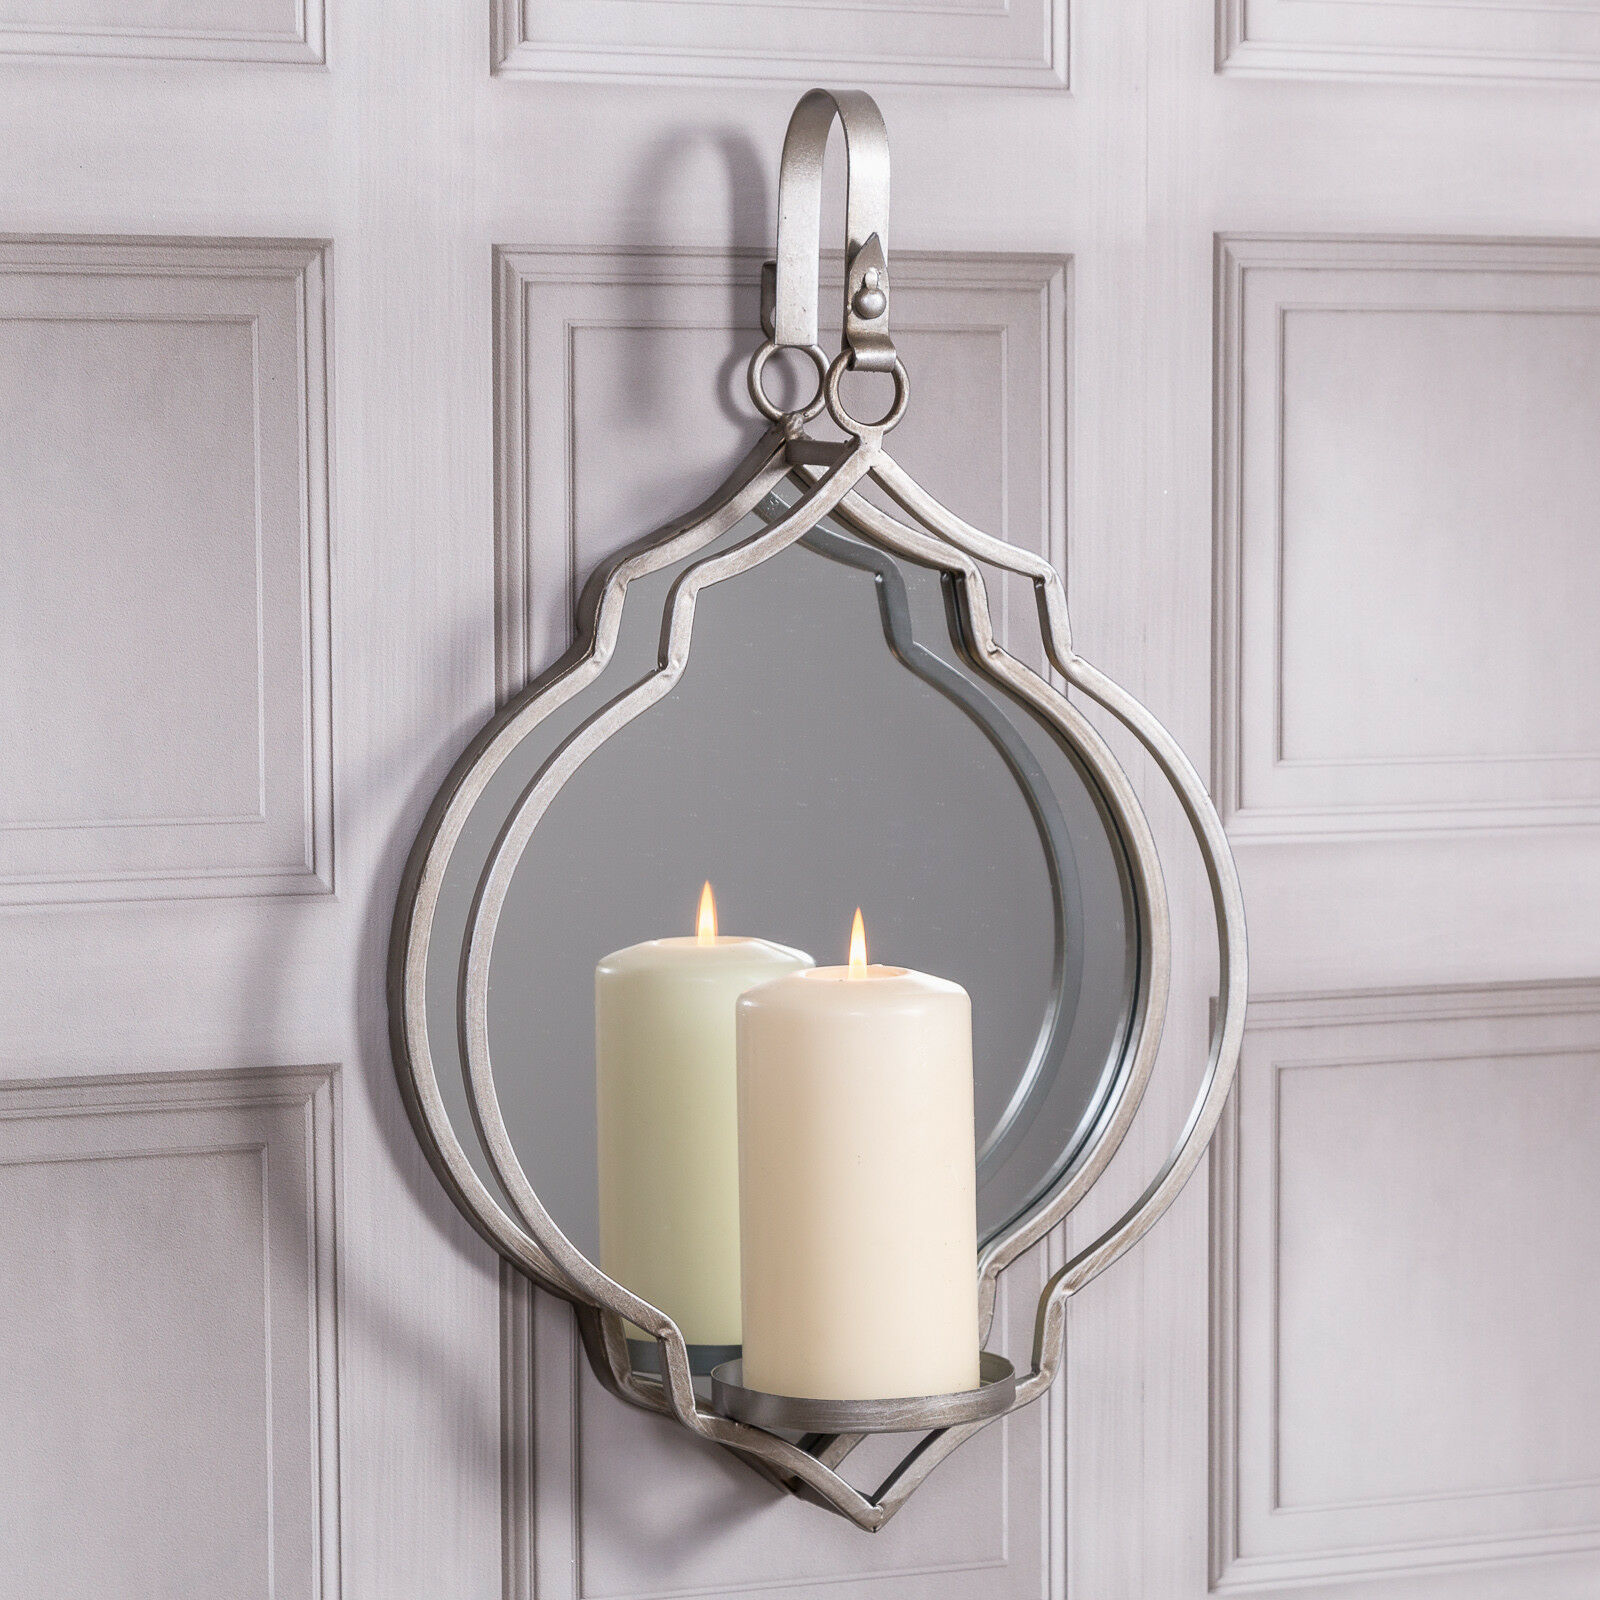 Silver Candle Holder Wall Hanger Large Mirror Modern Chic Metal Sconce Gift Home Ebay